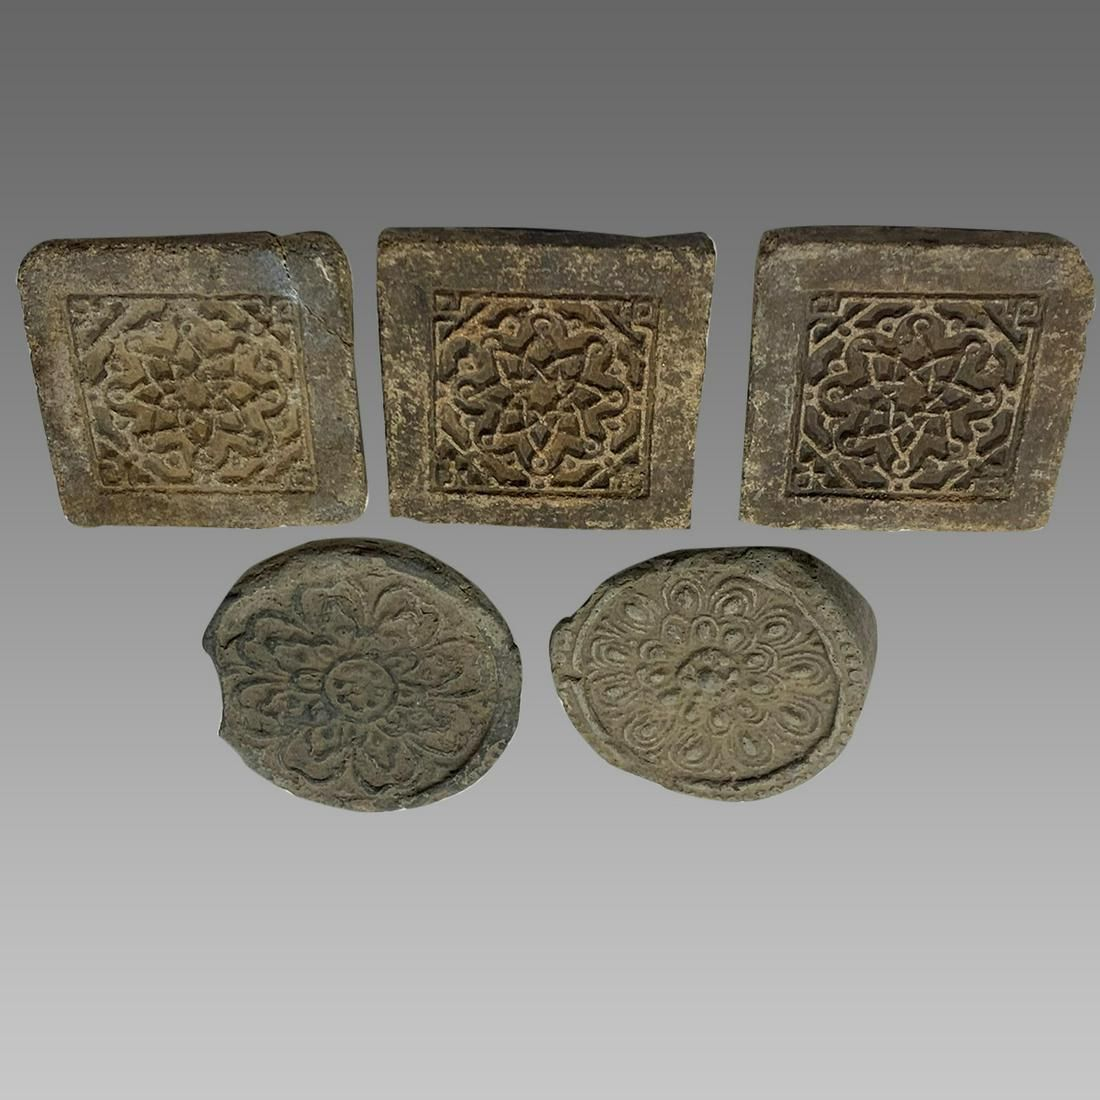 Lot of 5 Islamic Limestone Tiles with Floral design.